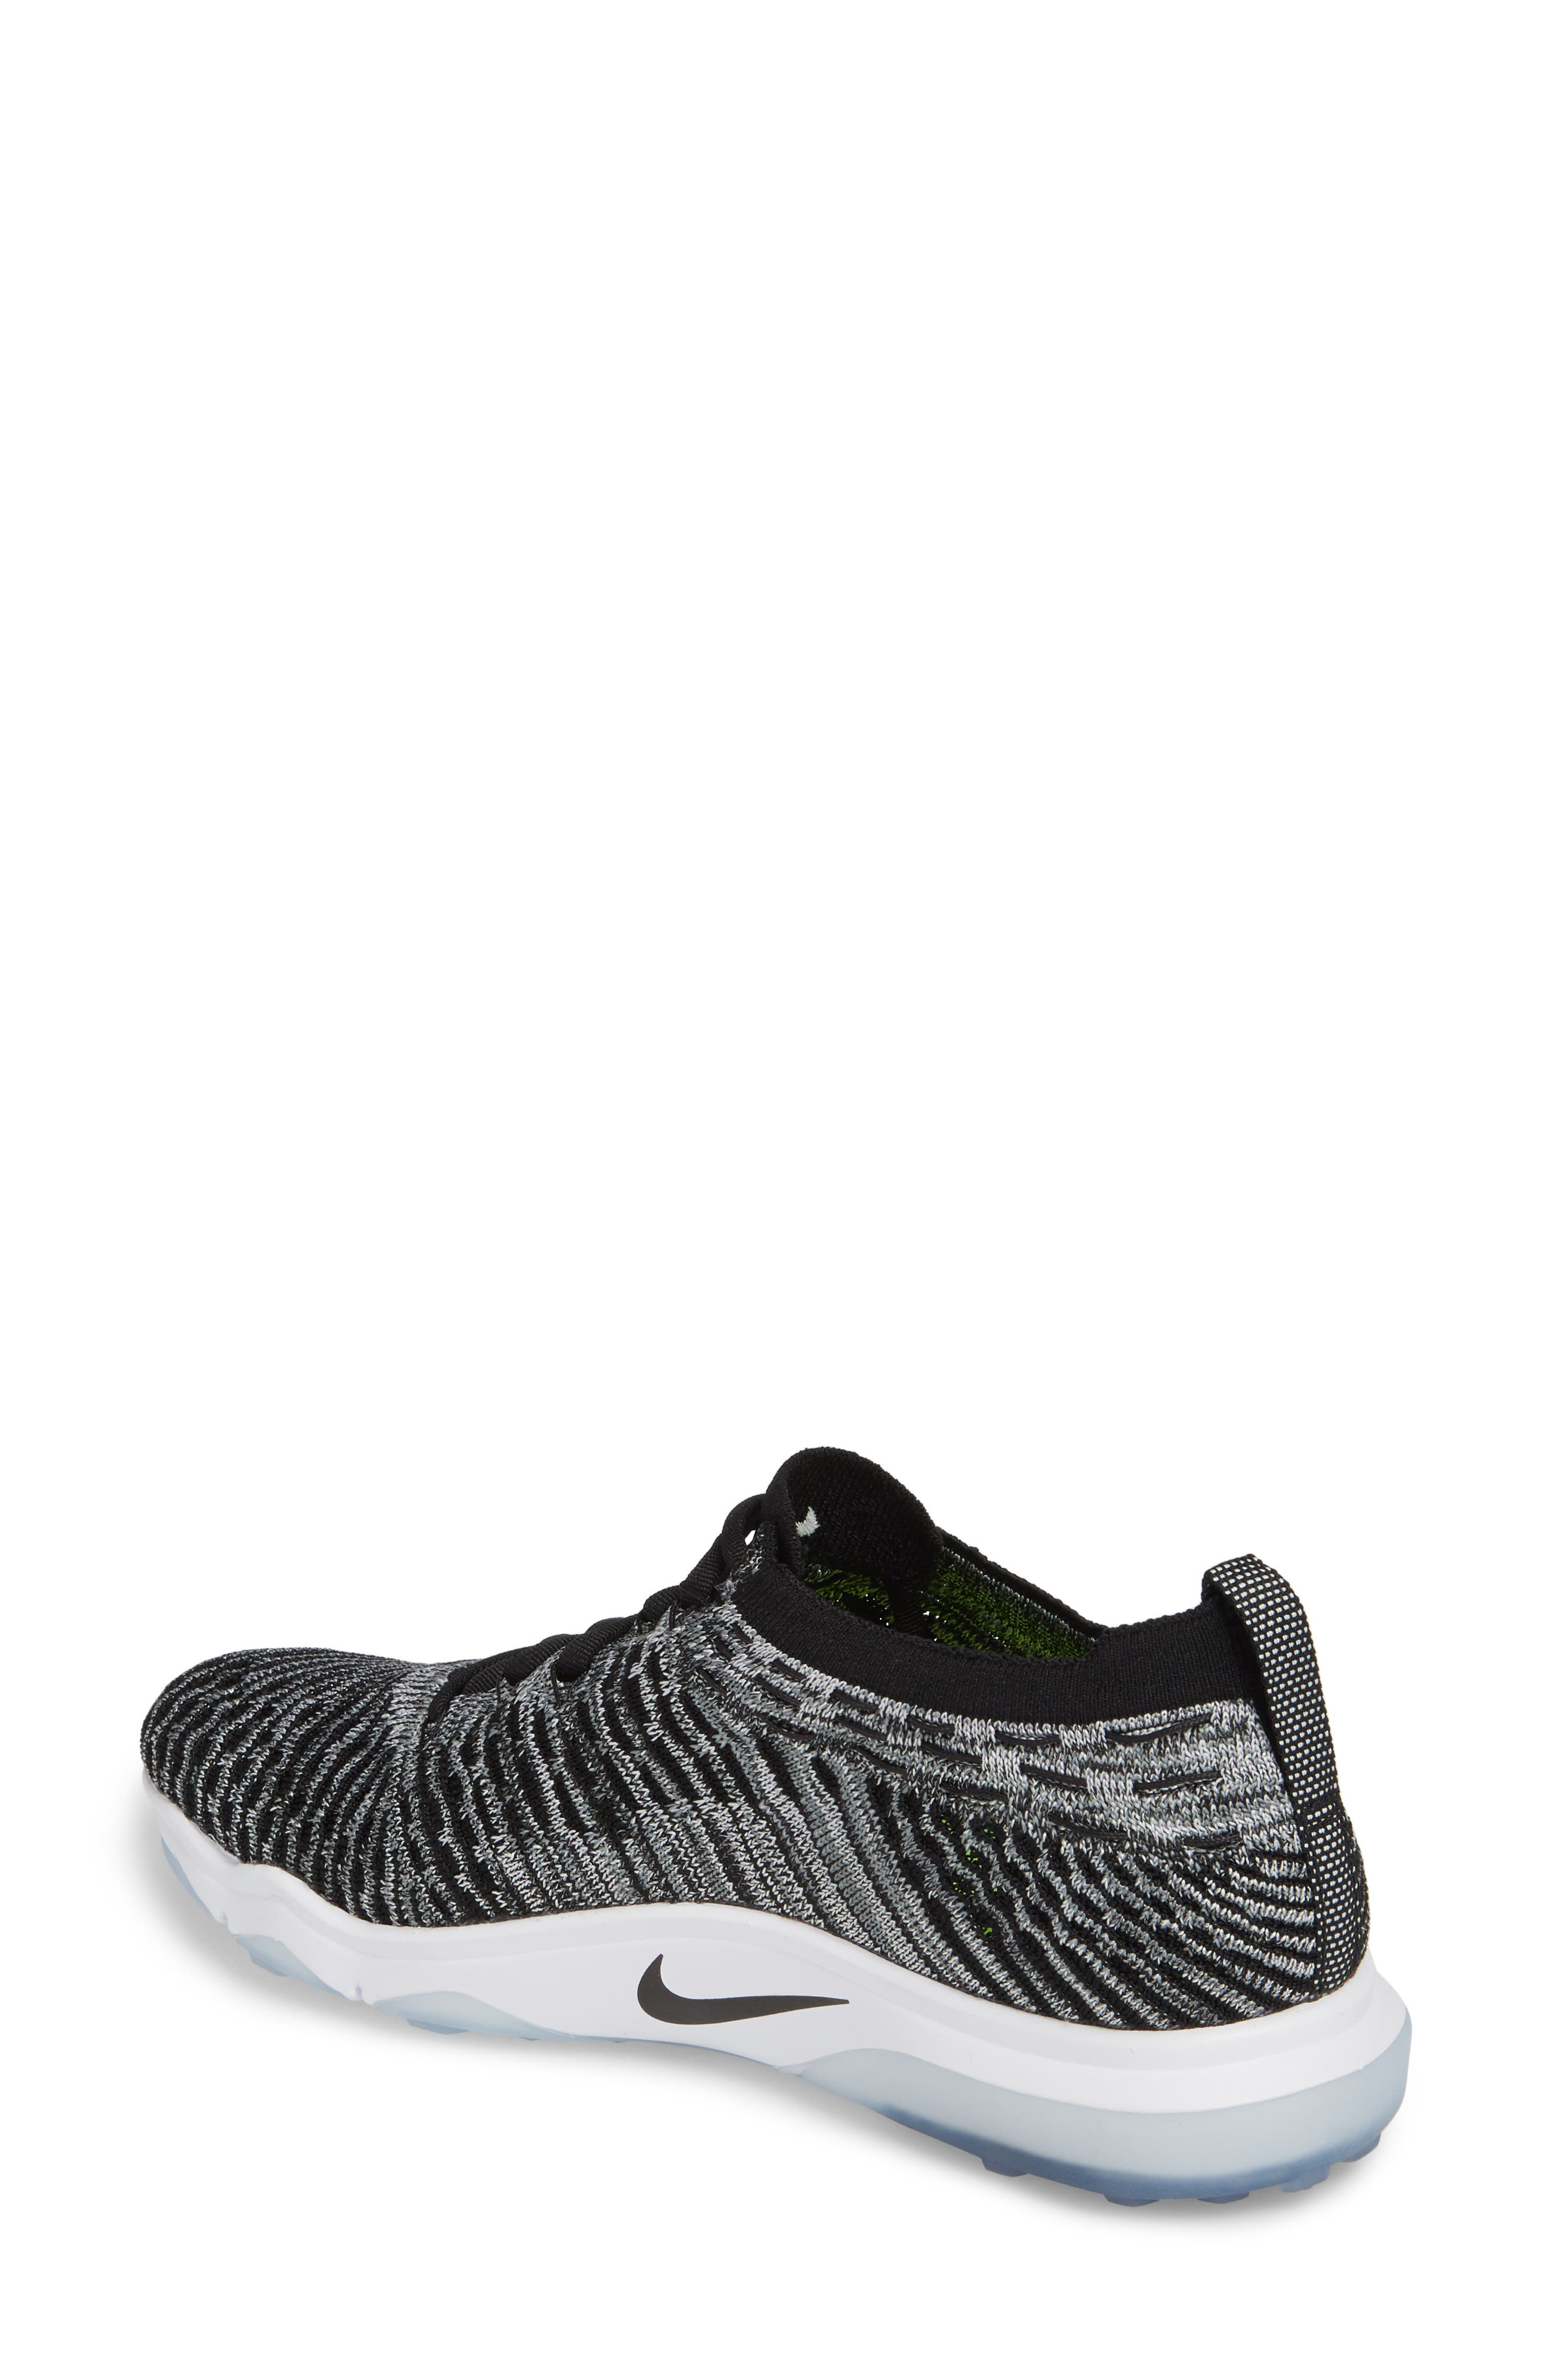 Air Zoom Fearless Flyknit Lux Training Shoe,                             Alternate thumbnail 2, color,                             Black/ White